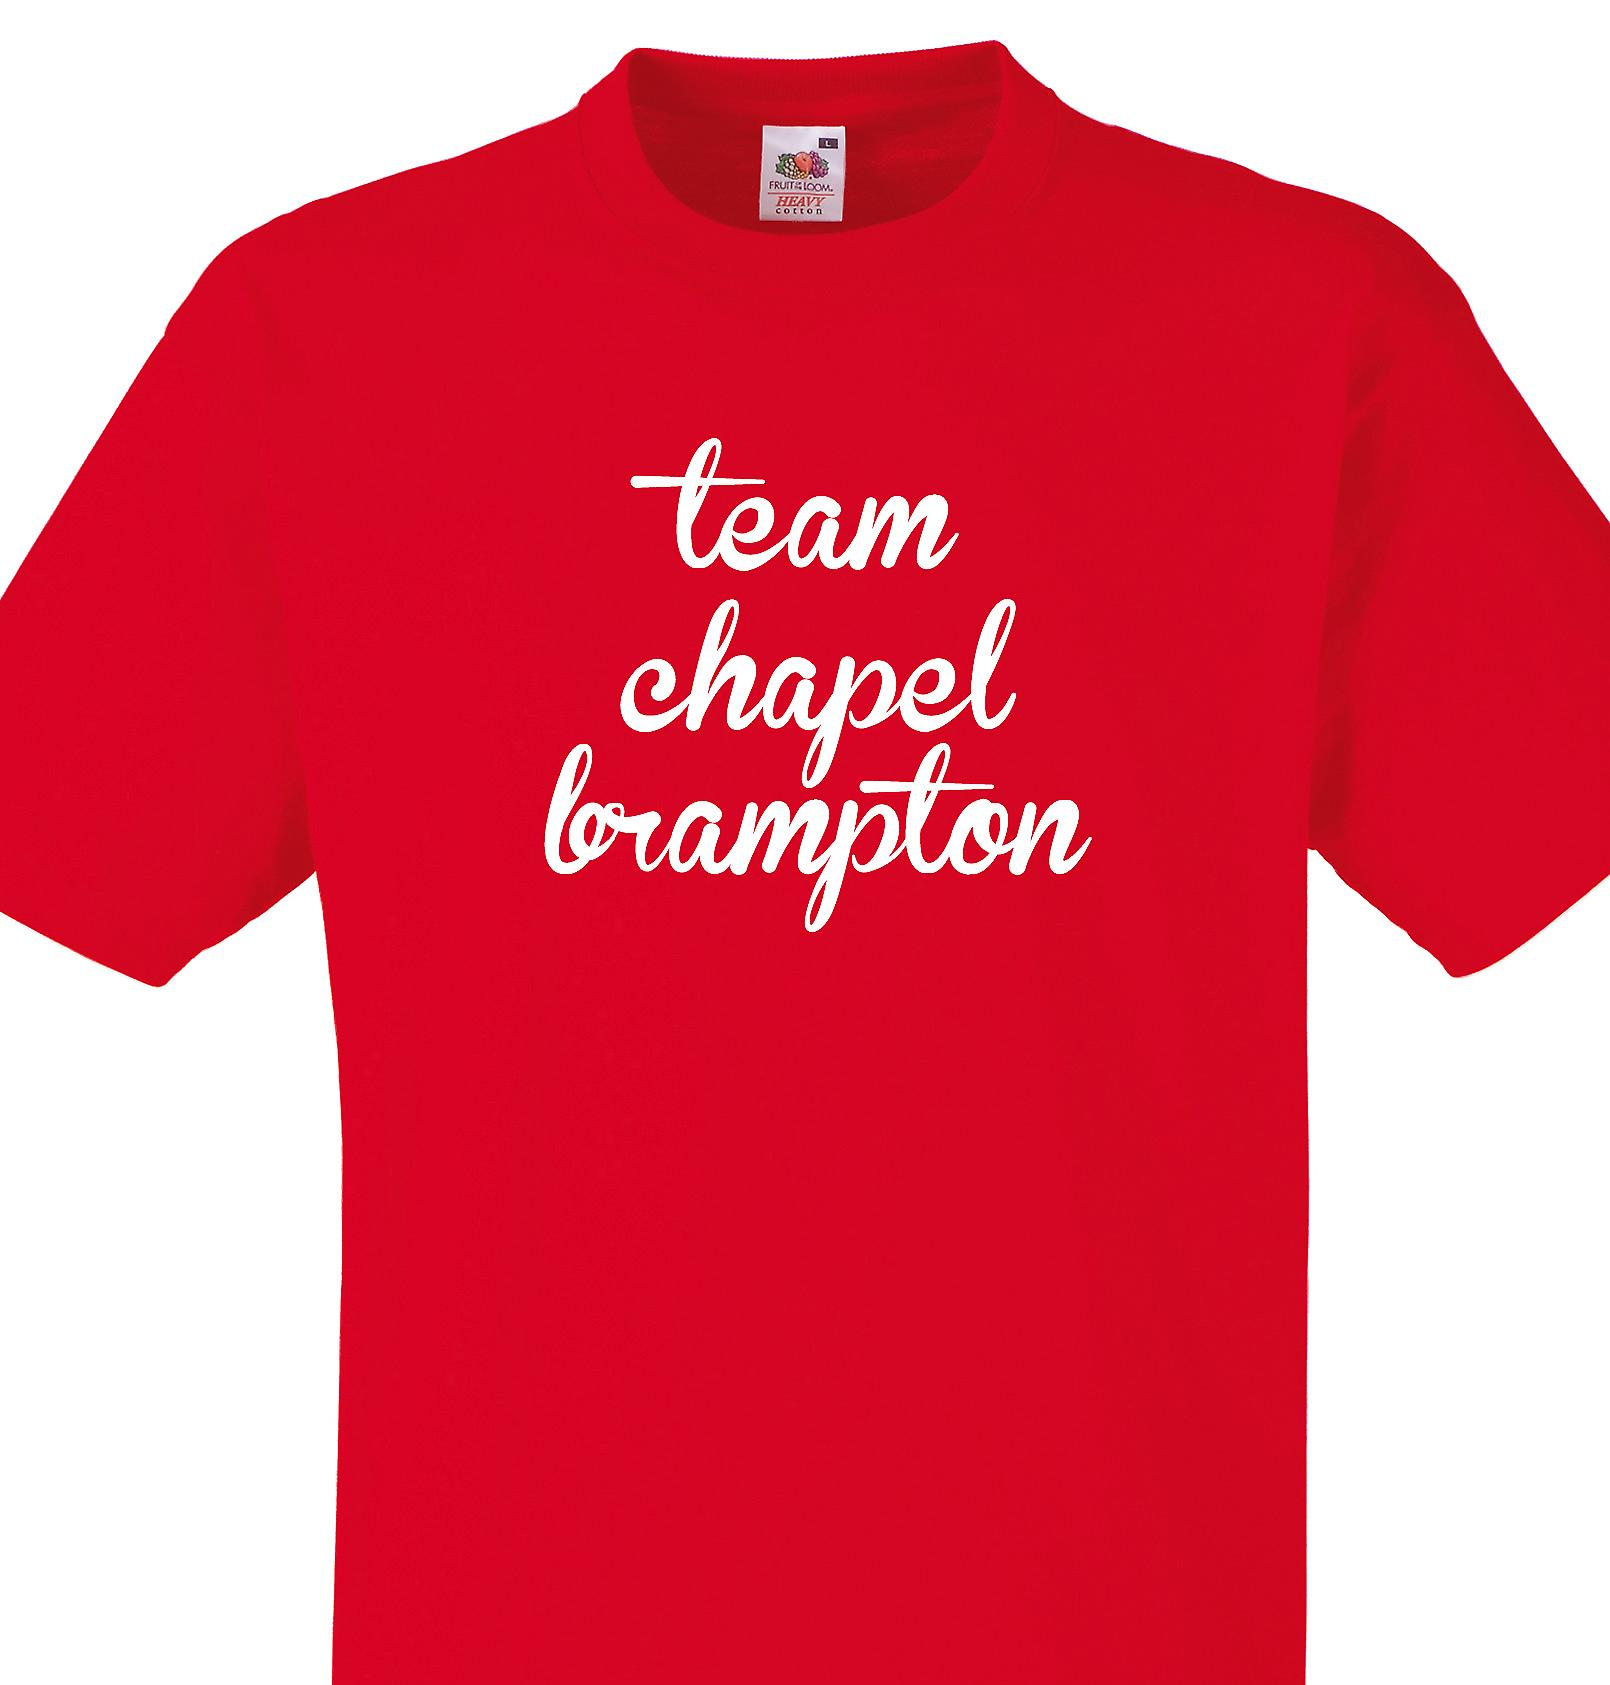 Team Chapel brampton Red T shirt